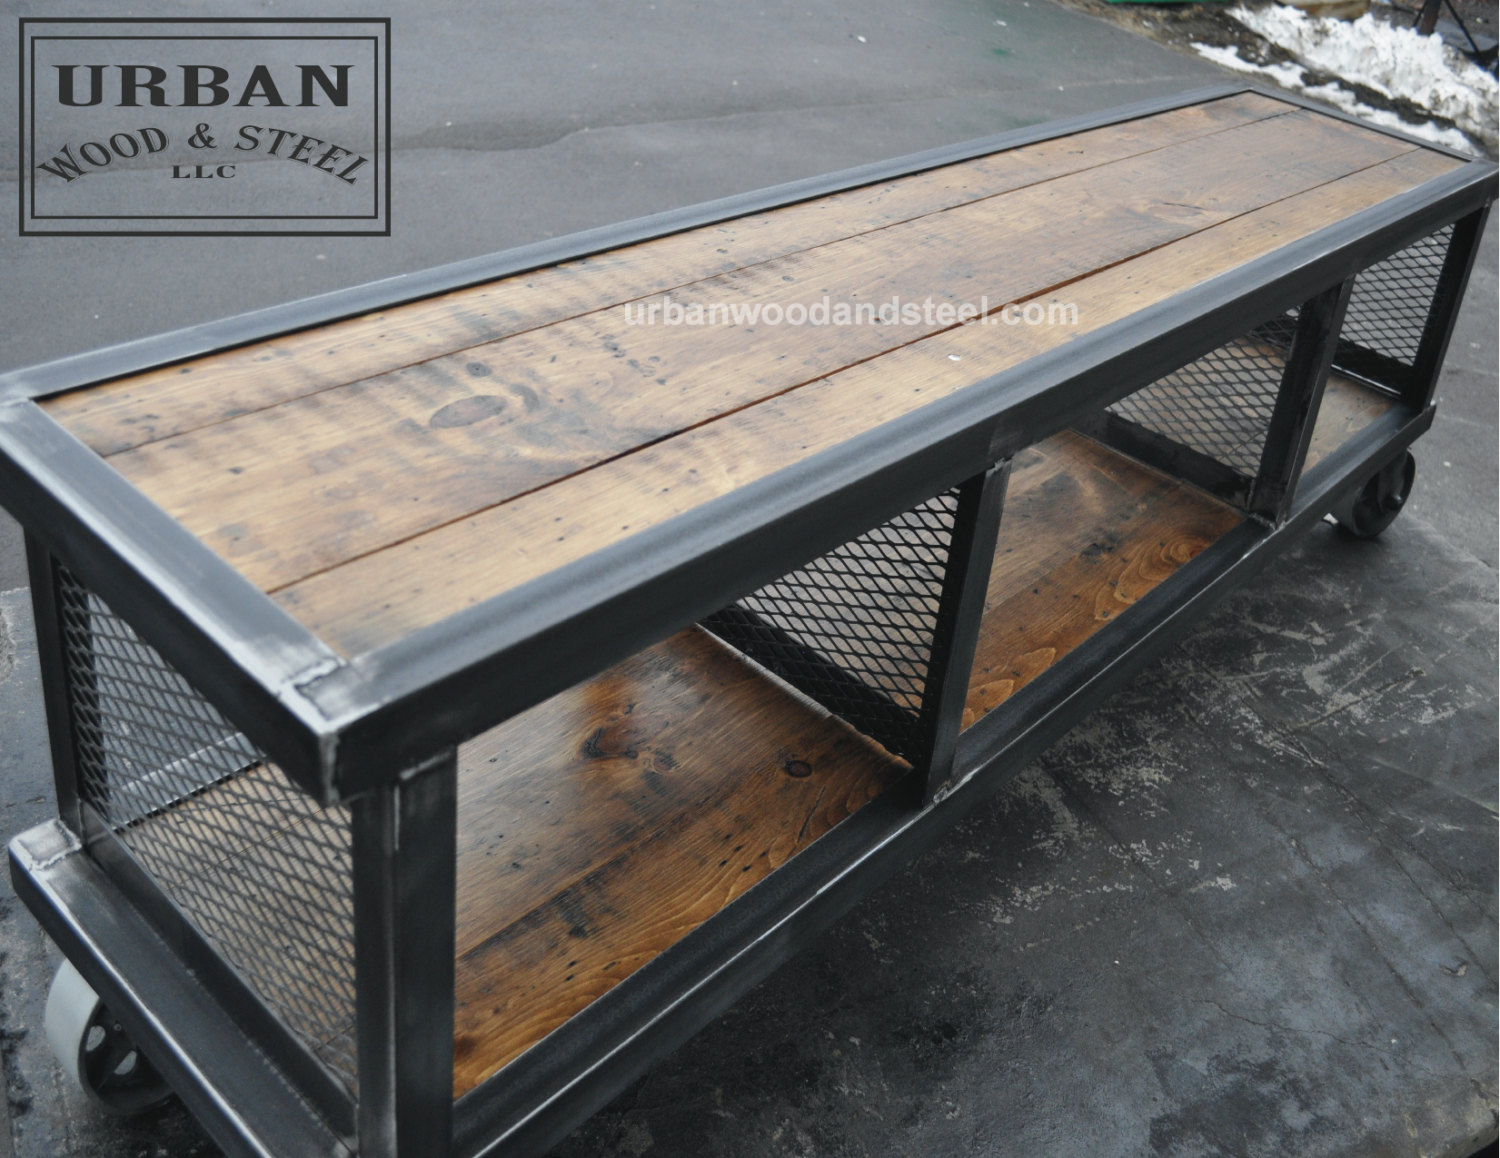 Charmant Urban Wood U0026 Steel LLC